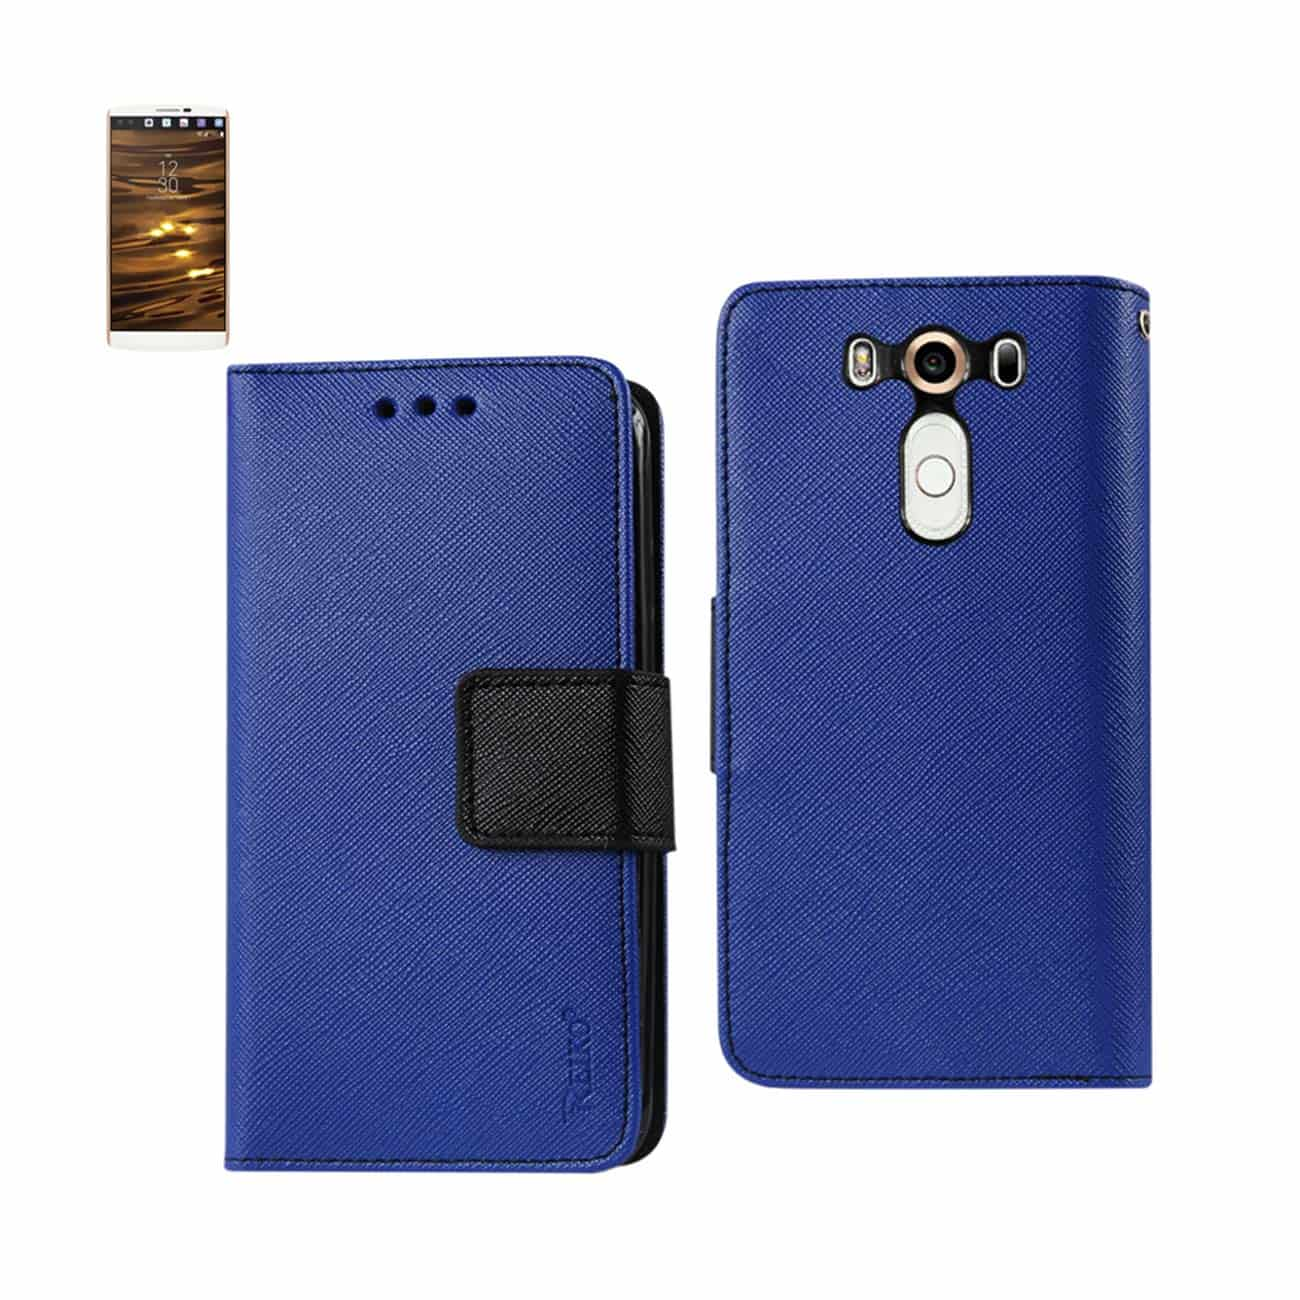 LG V10 3-IN-1 WALLET CASE IN NAVY